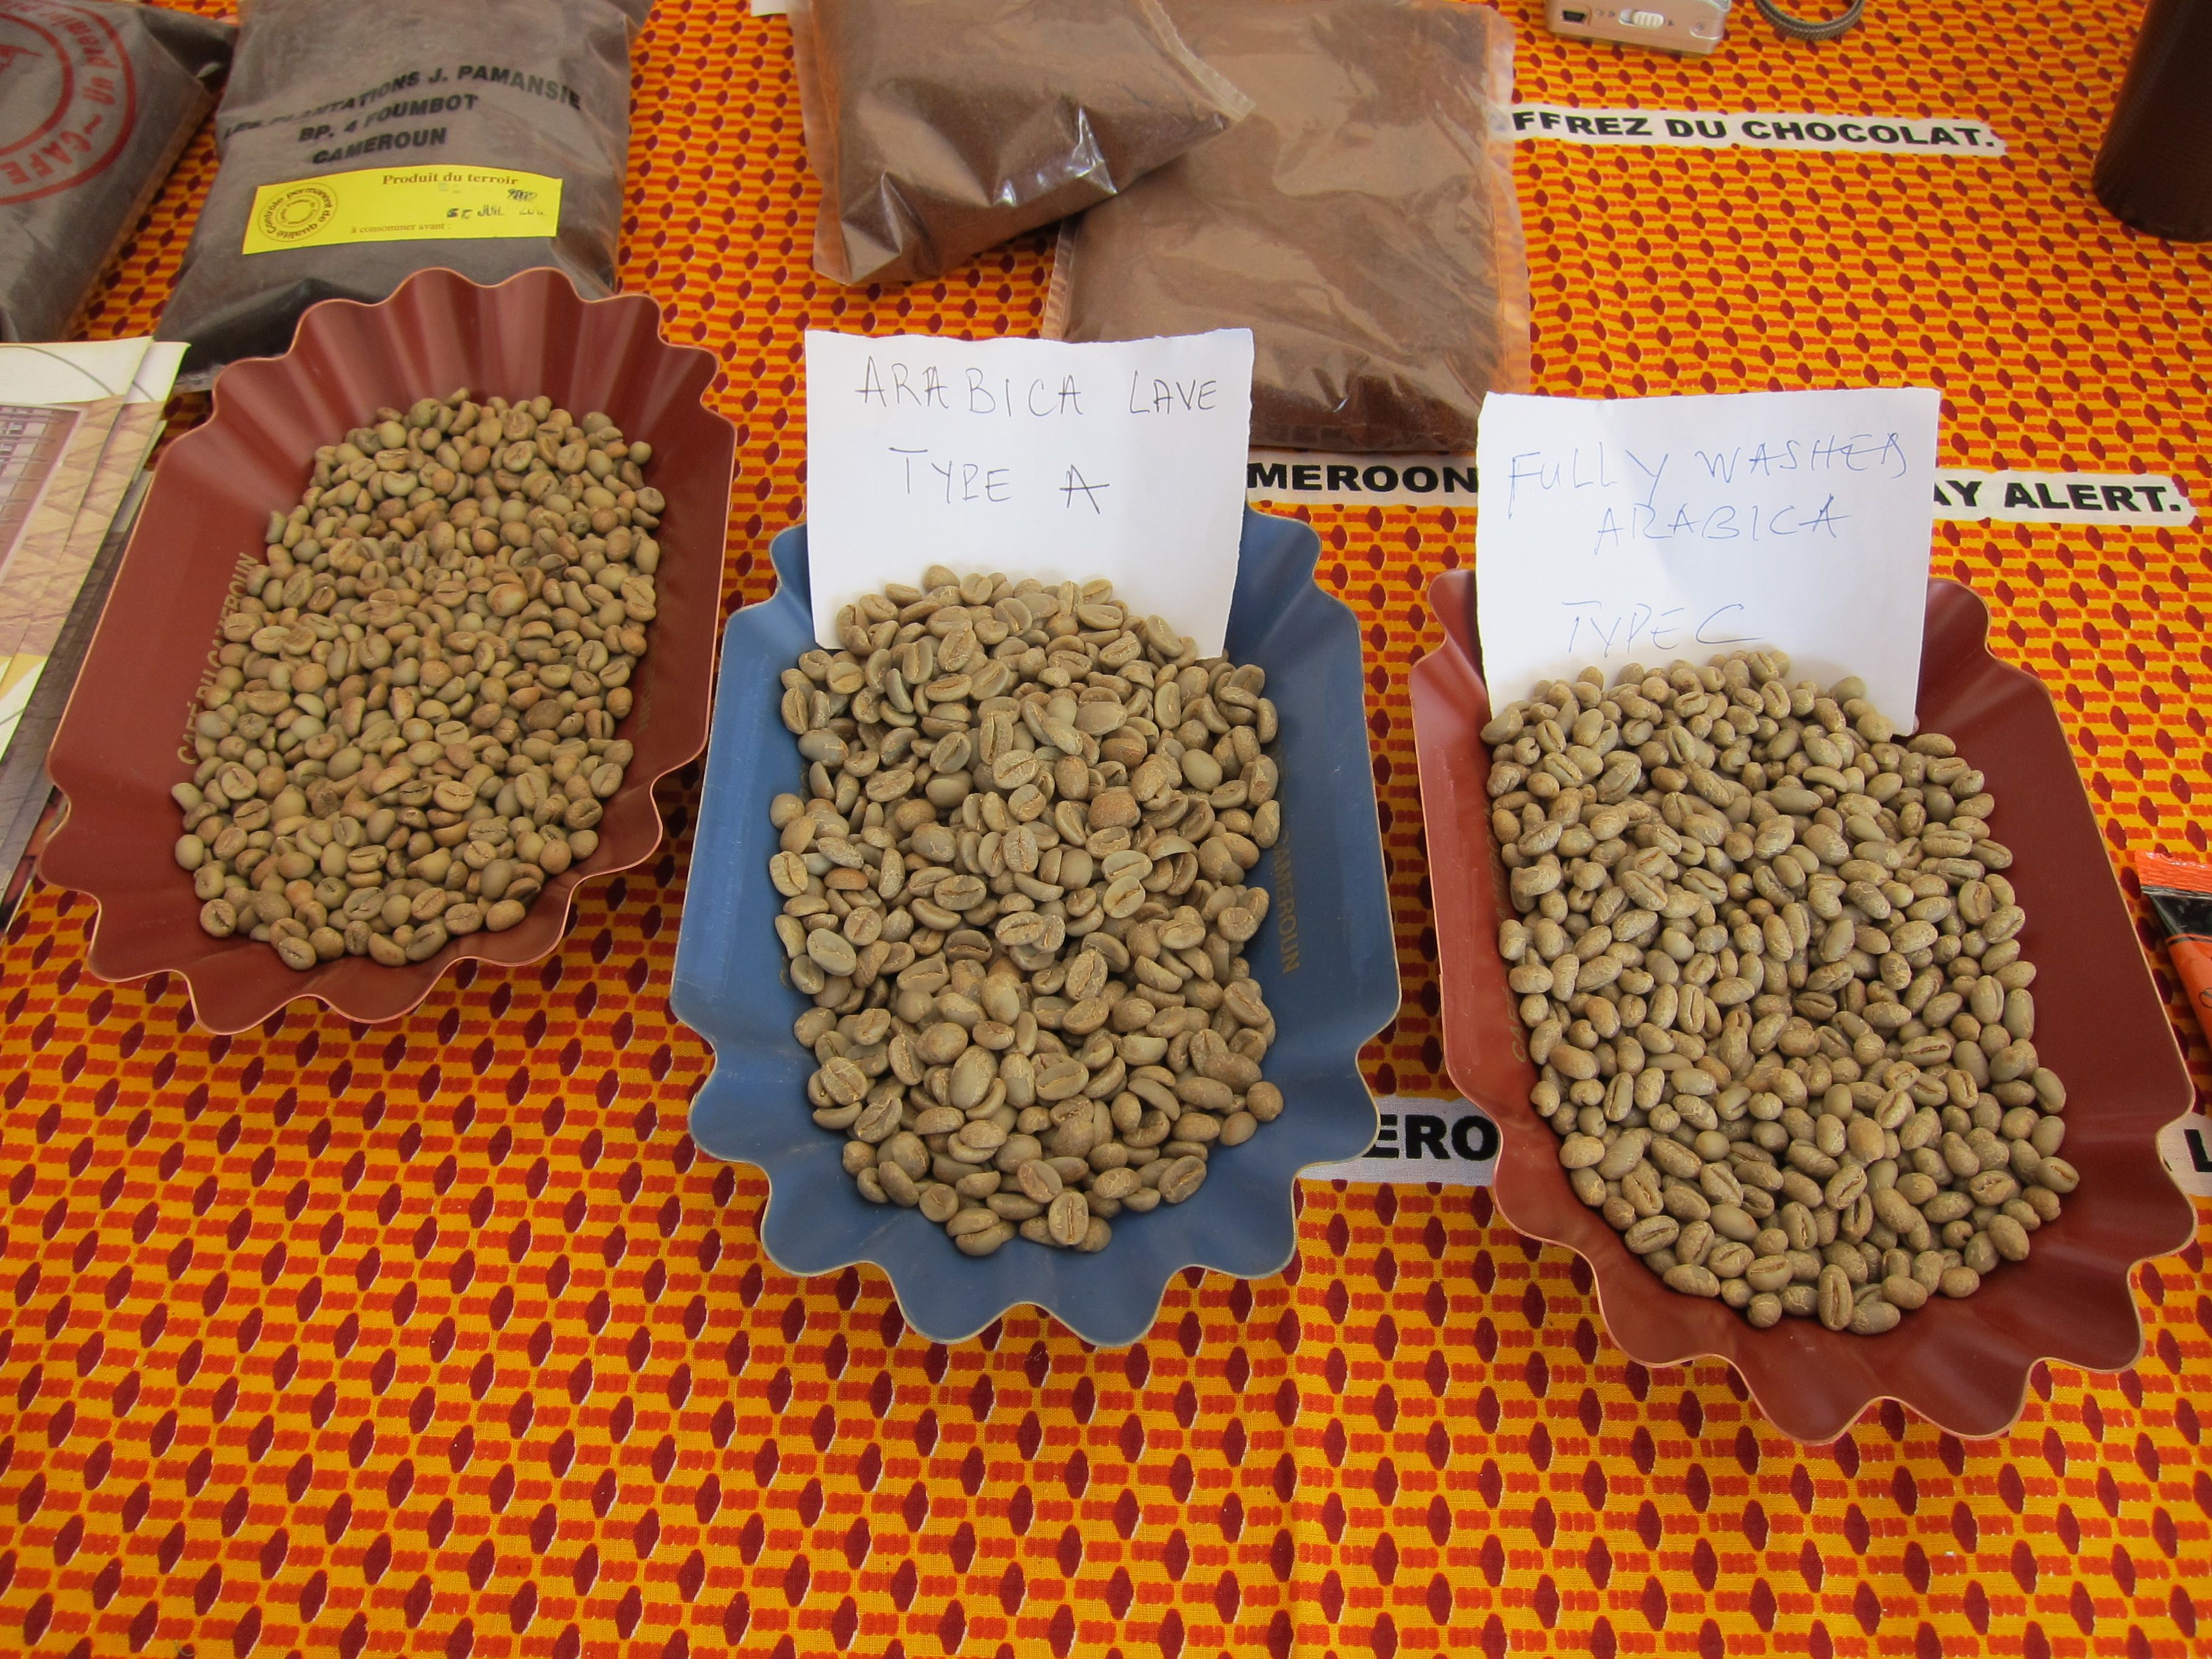 Green coffee inspection... Green coffee bean extract